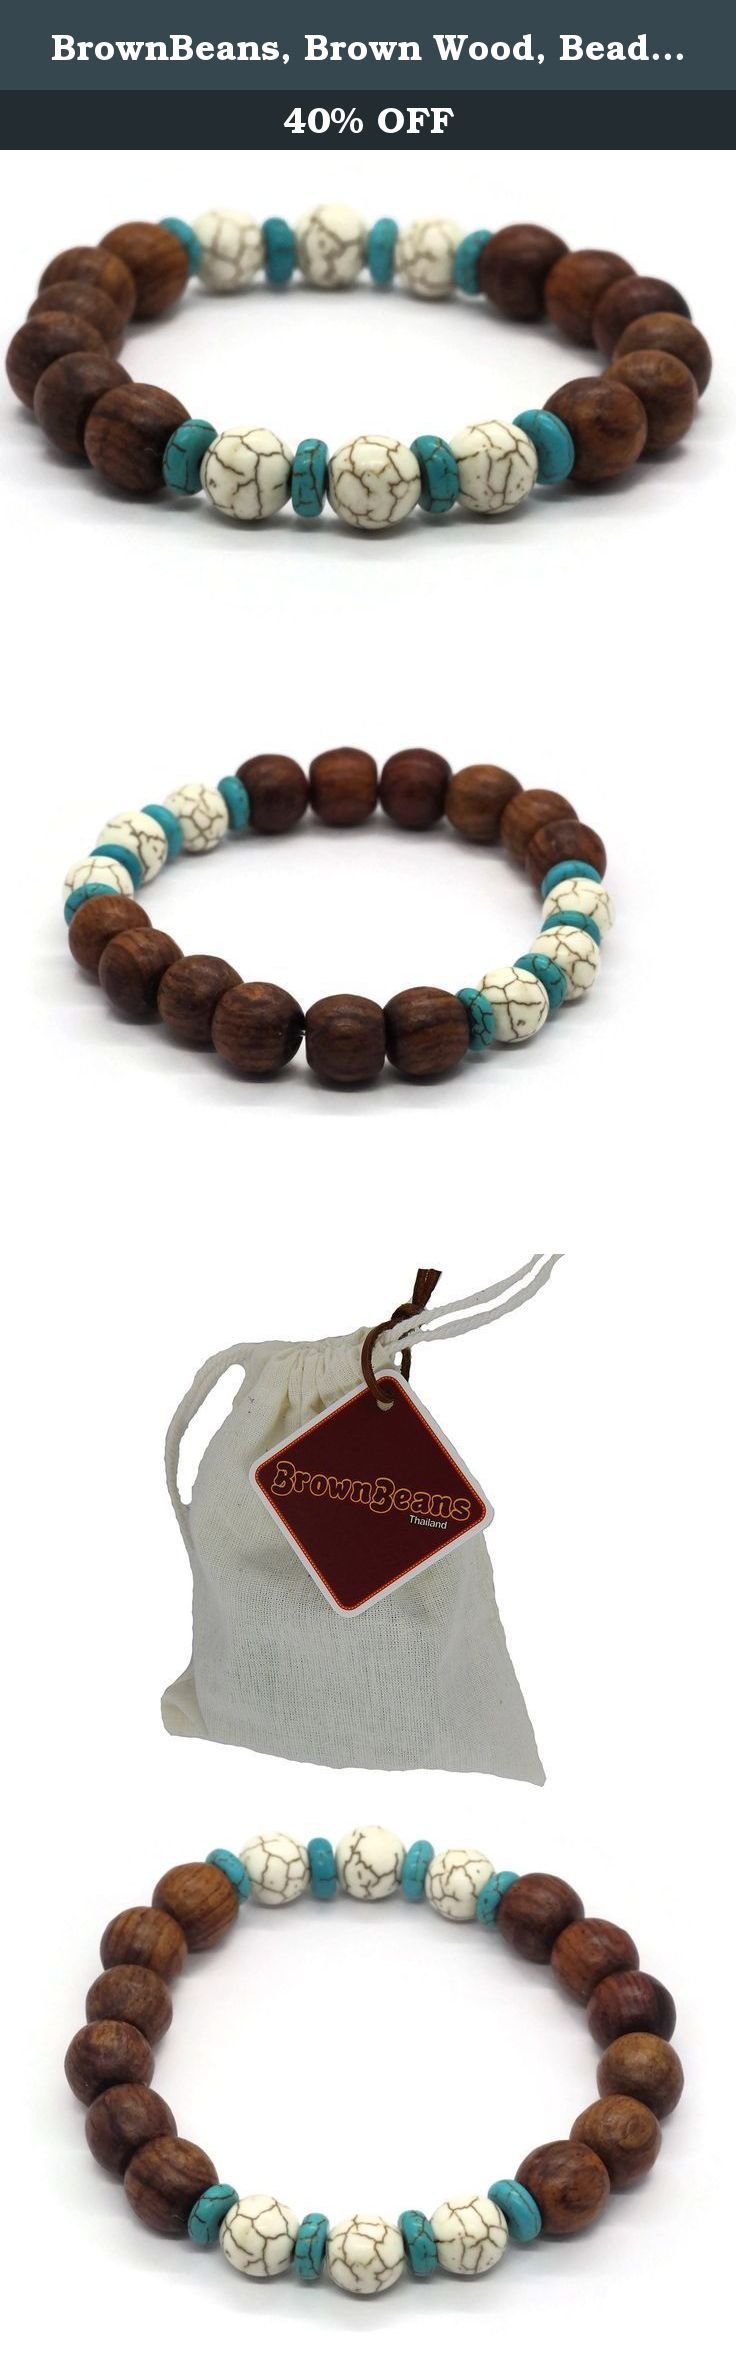 "BrownBeans, Brown Wood, Beads, Surf Style Men's Elastic Stretch Bracelets (CBCT5060). Round Wood & Stone Beads, Mens Casual Wear Surfer Style Stretch Bracelet. Material: Wood, Beads and Elastic Tread. (New Lot) Approx. Size: = 8.2"" Length (Before Stretch), Thickness = 13-13.5 mm (round wood, bigger than old lot), 10 mm (Beads), Fits 7.5"" - 8"" Wrist. Elastic Band, No Clasp, Comfortable to Wear. This bracelet is handmade per piece, maybe a bit different from the pictures. (Included wood…"